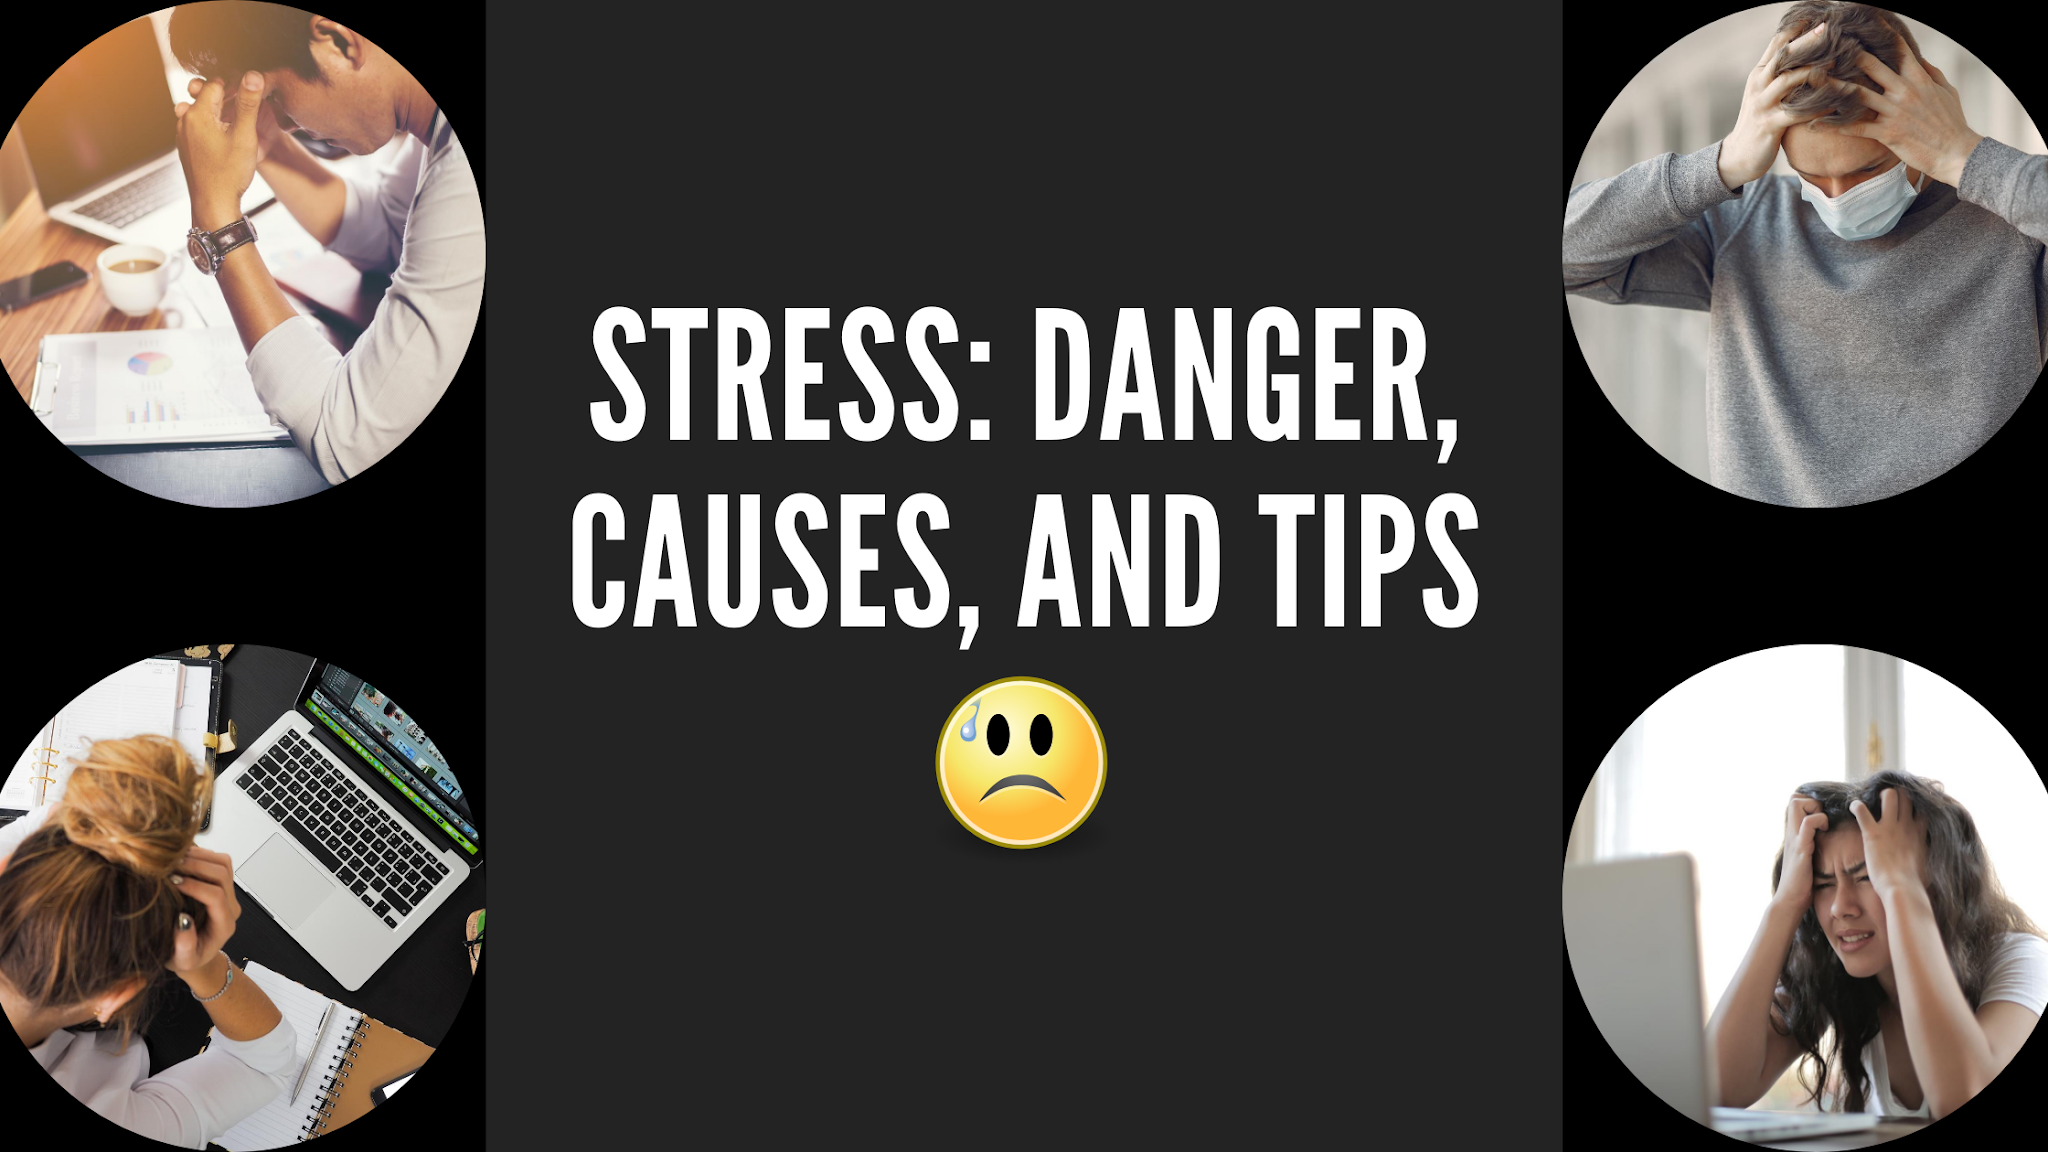 Stress: Danger, Causes, and Tips